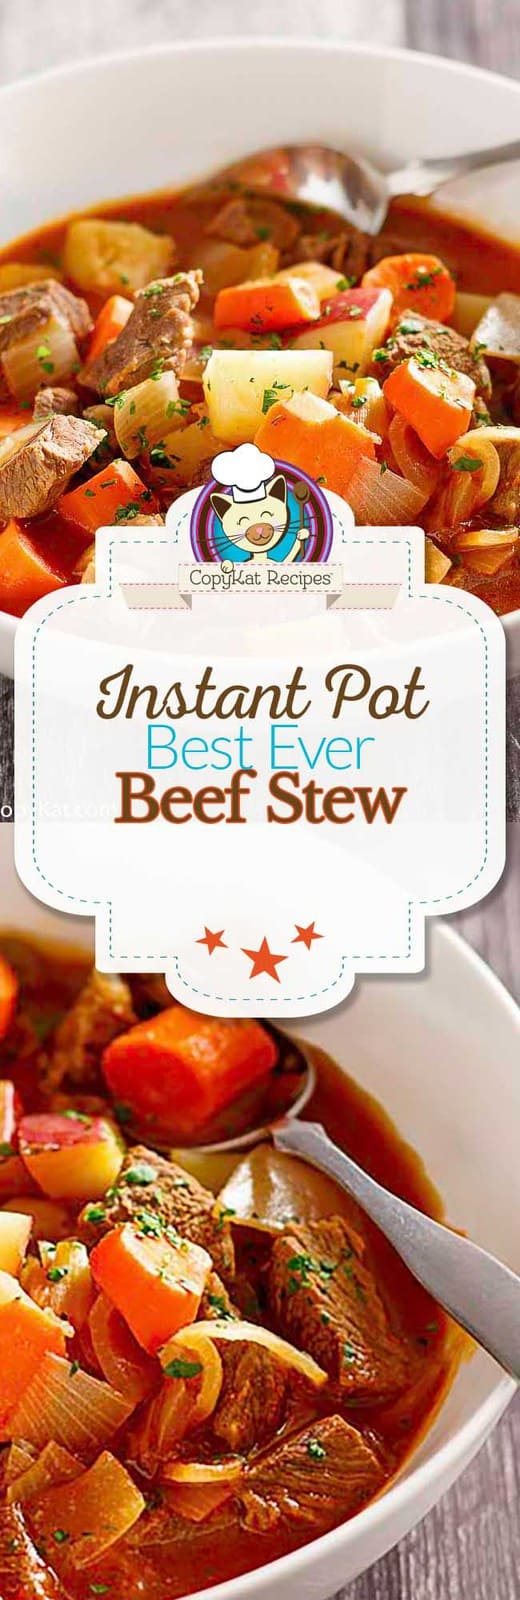 You can make the best ever Instant Pot Beef Stew with this easy recipe.  #instantpot #pressurecooker #stew #beefstew #recipe